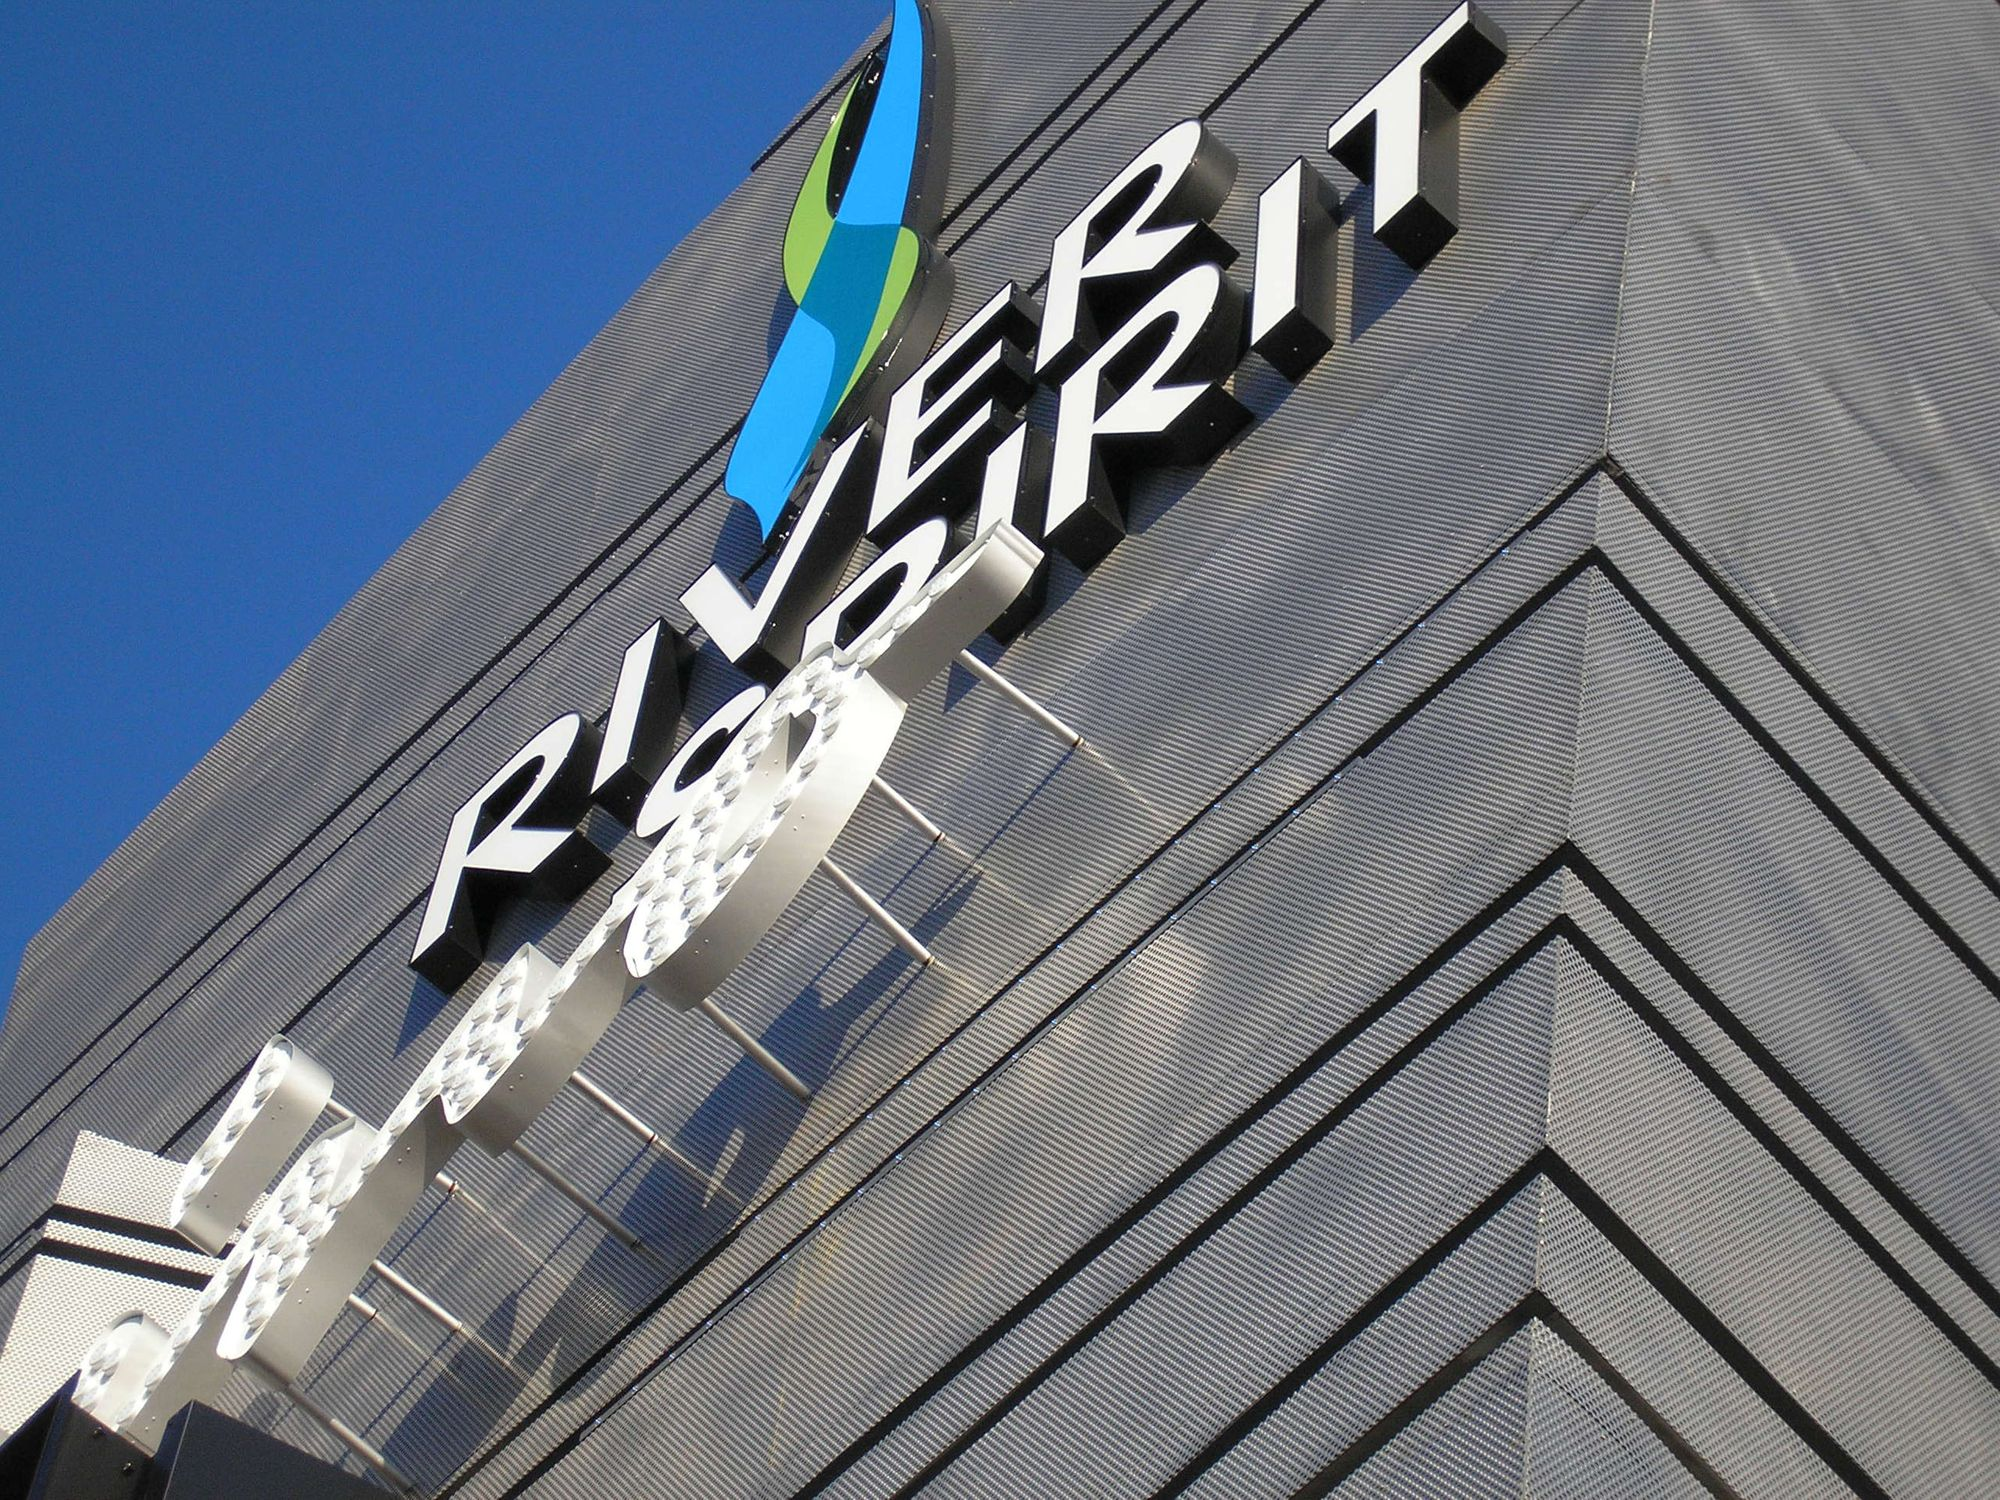 River Spirit Casino's sign composed of McNICHOLS® Perforated Stainless Steel